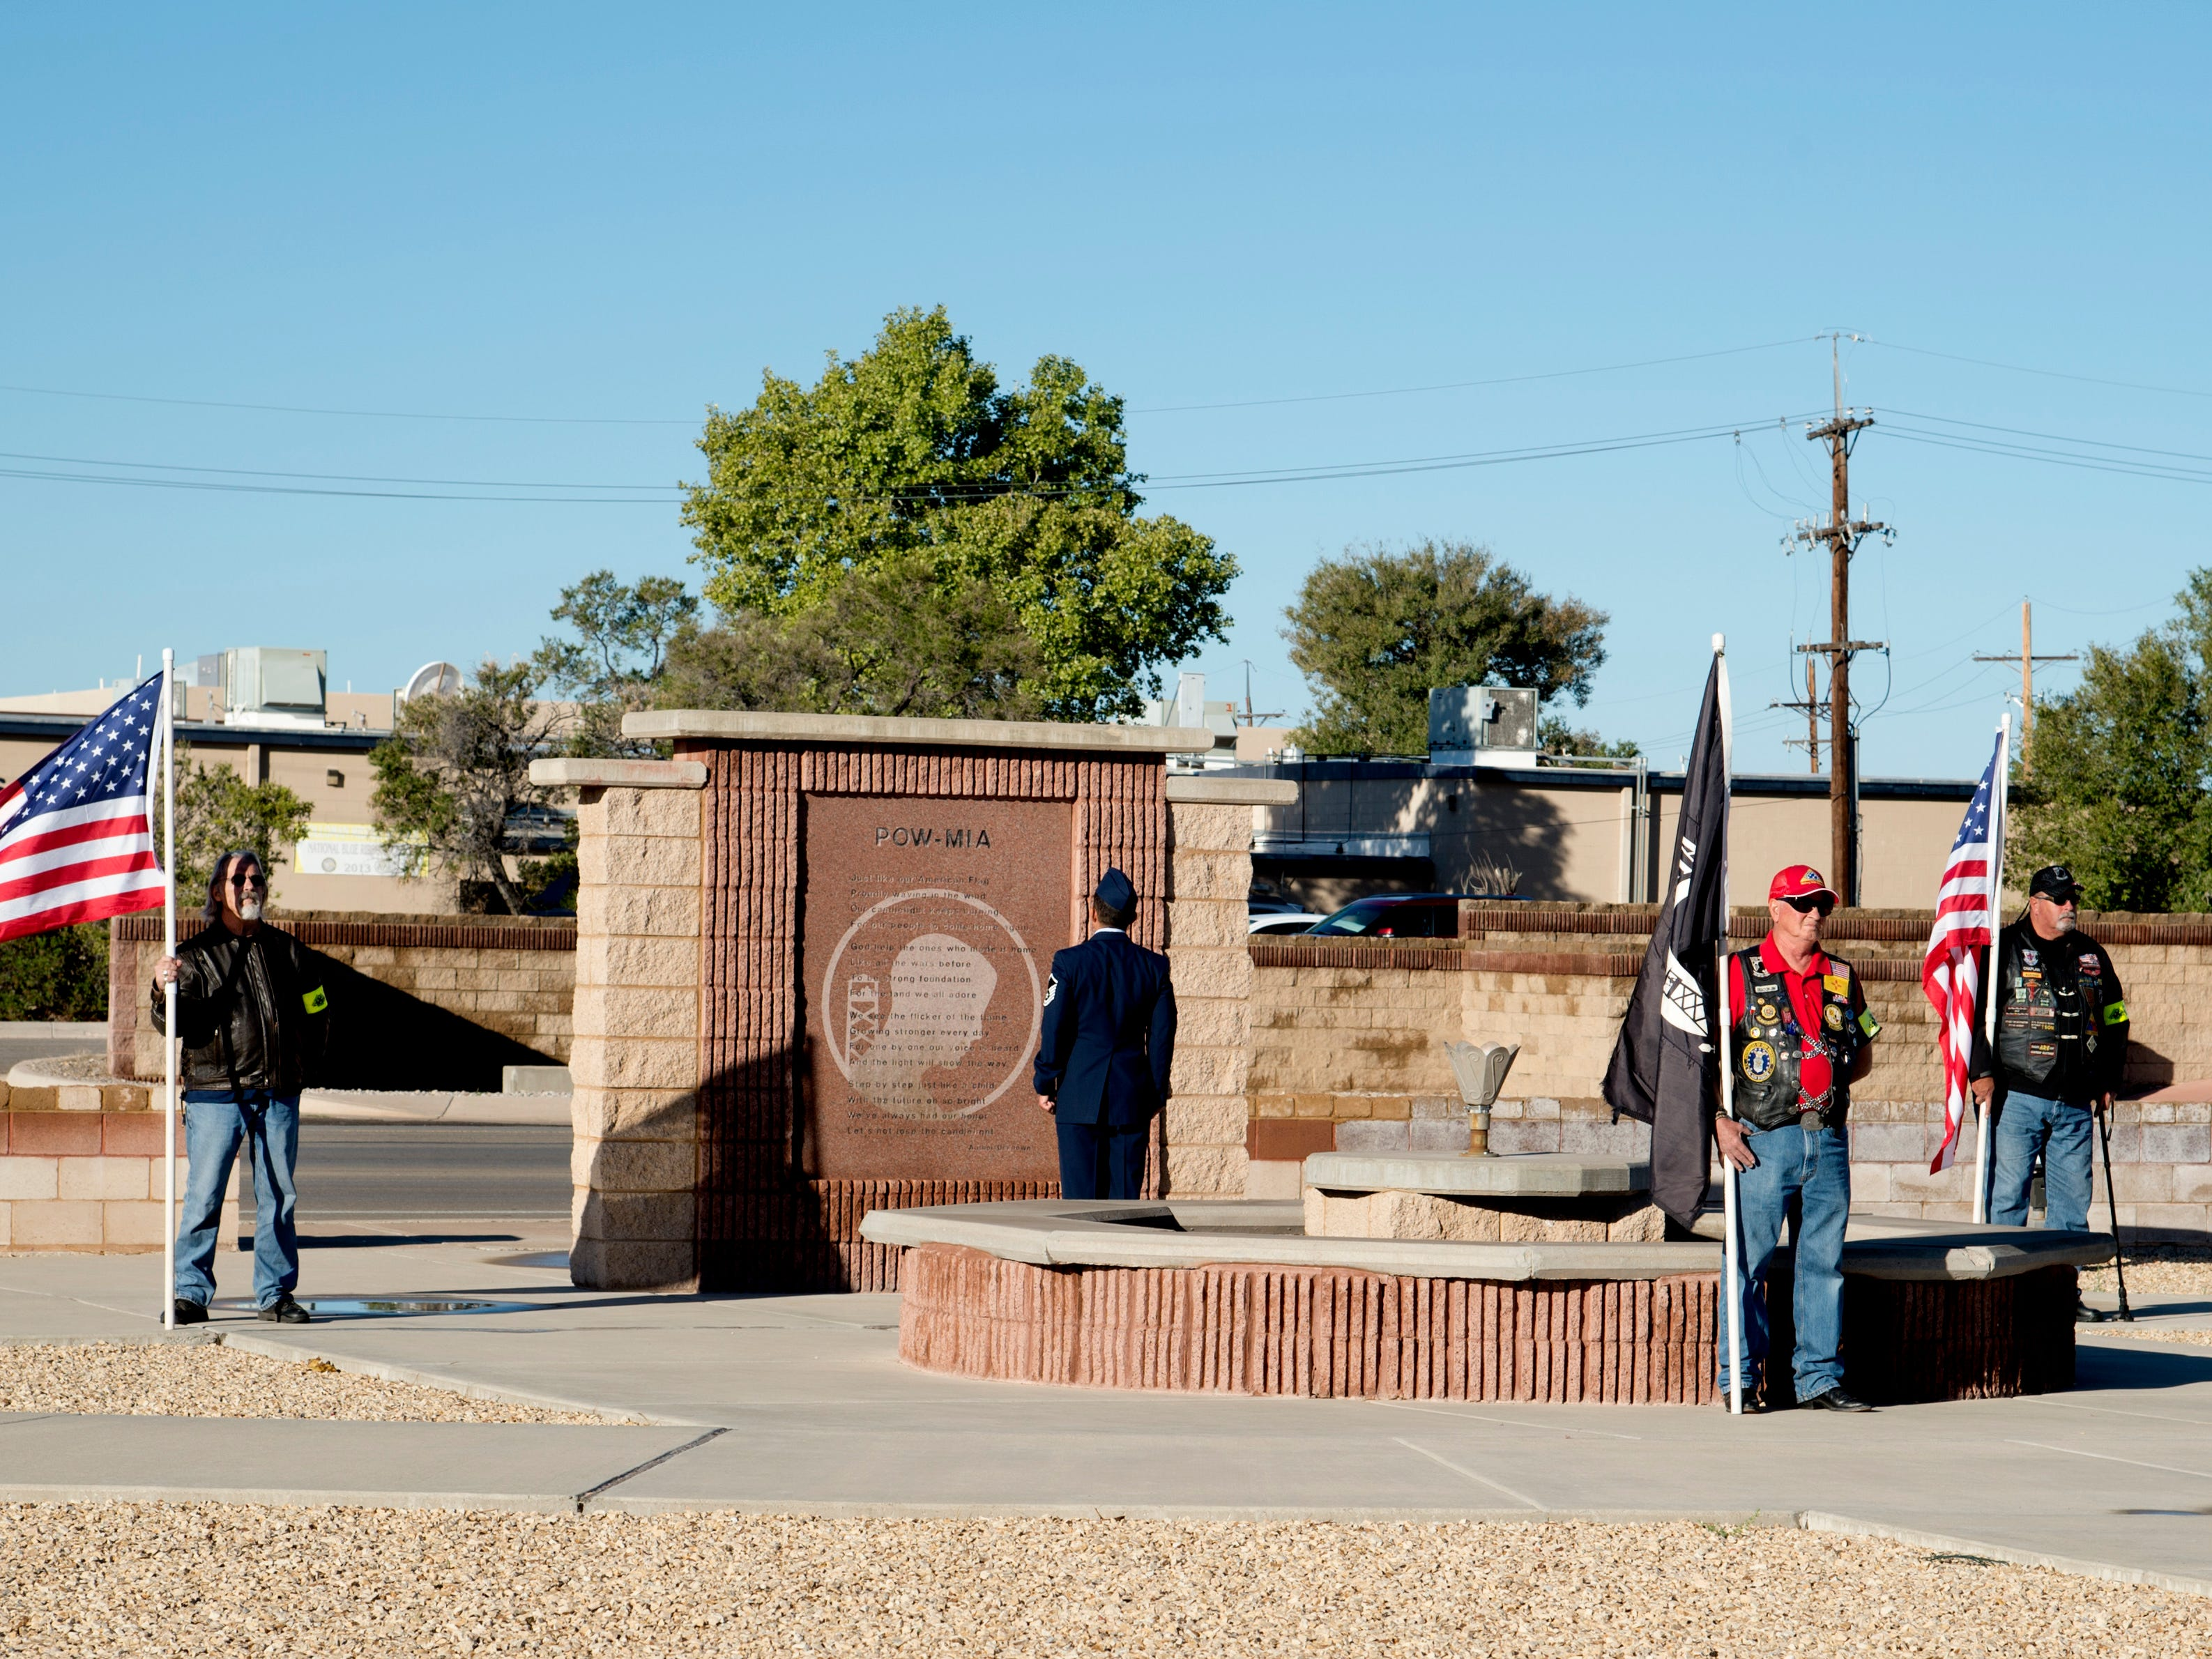 Local Alamogordo veterans post the colors in front of the POW/MIA memorial at Heritage Park on Holloman Air Force Base, N.M., Sept. 21. The ceremony, in rememberance of prisoners-of-war and those still missing-in-action, was part of Holloman's POW/MIA commemoration.